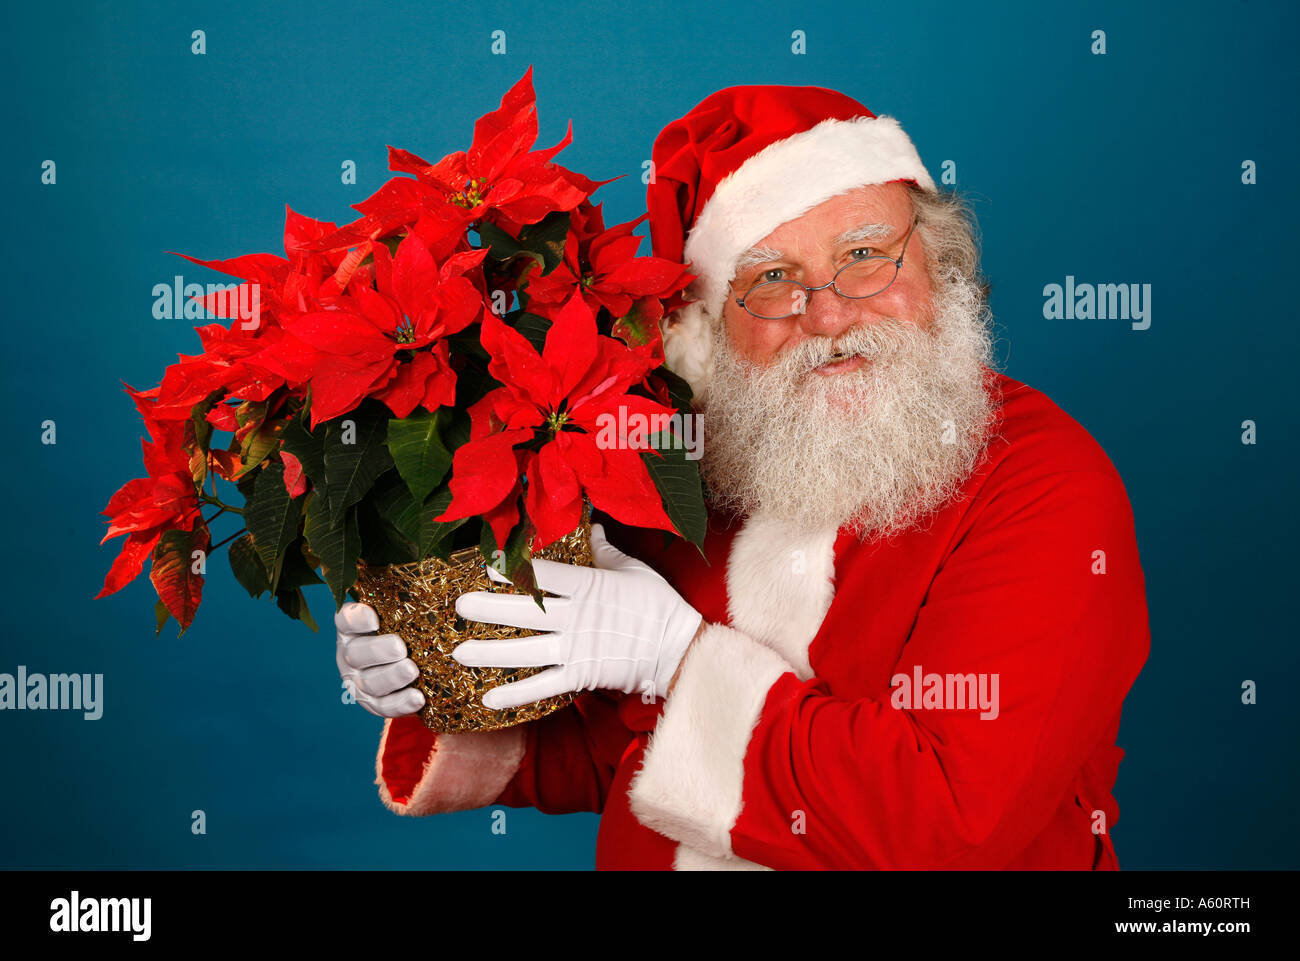 SANTA CLAUS HOLDS A POINSETTIA PLANT. - Stock Image